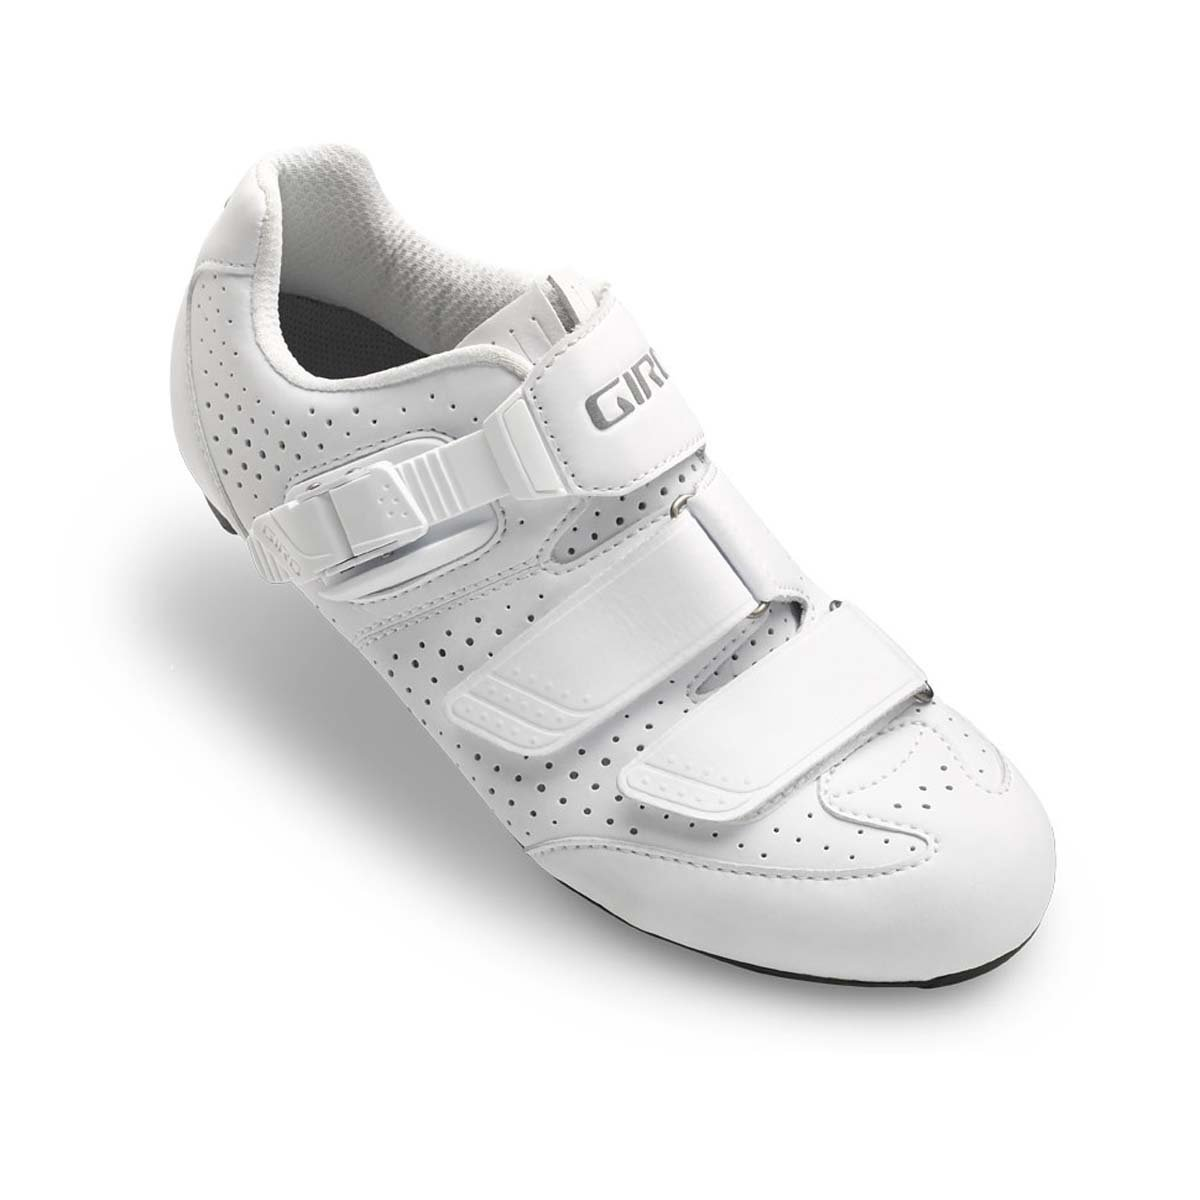 Giro Espada E70 Bike Shoe - Women's Matte White 37